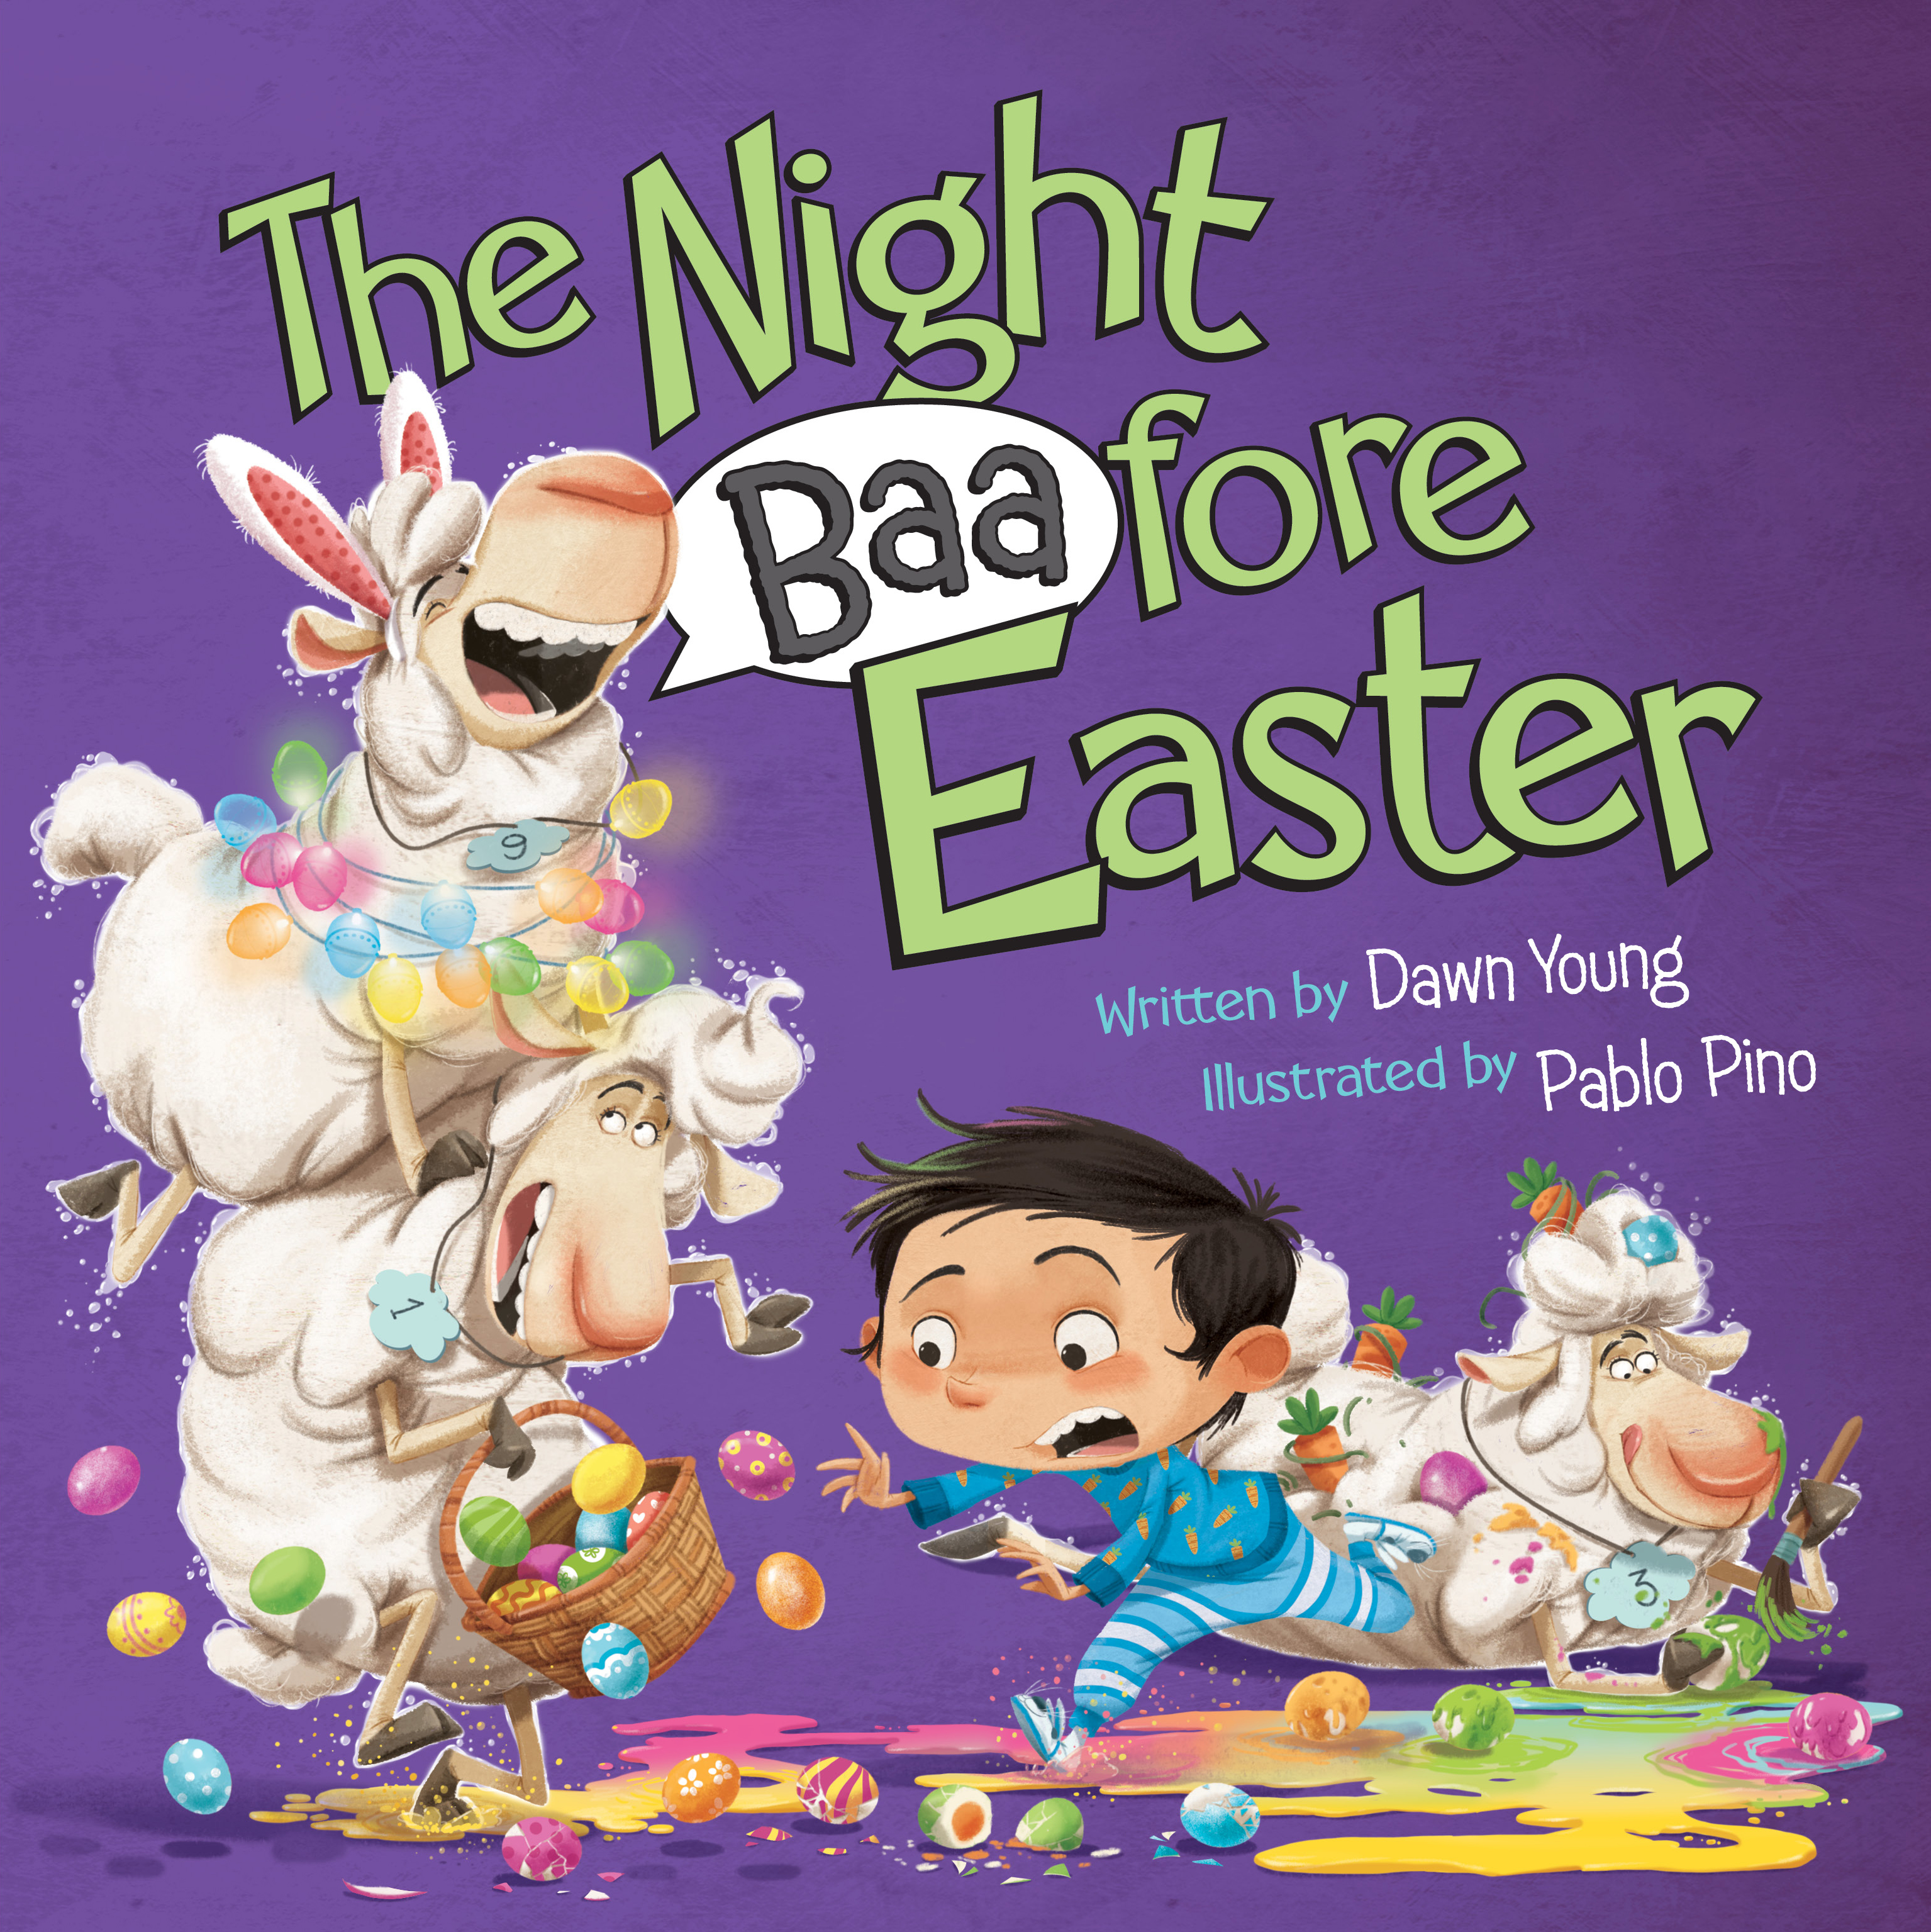 The Night Baafore Easter Author: Dawn Young Illustrator: Pablo Pino Publisher Name: Hachette Book Group Date of Publication: January 26, 2021